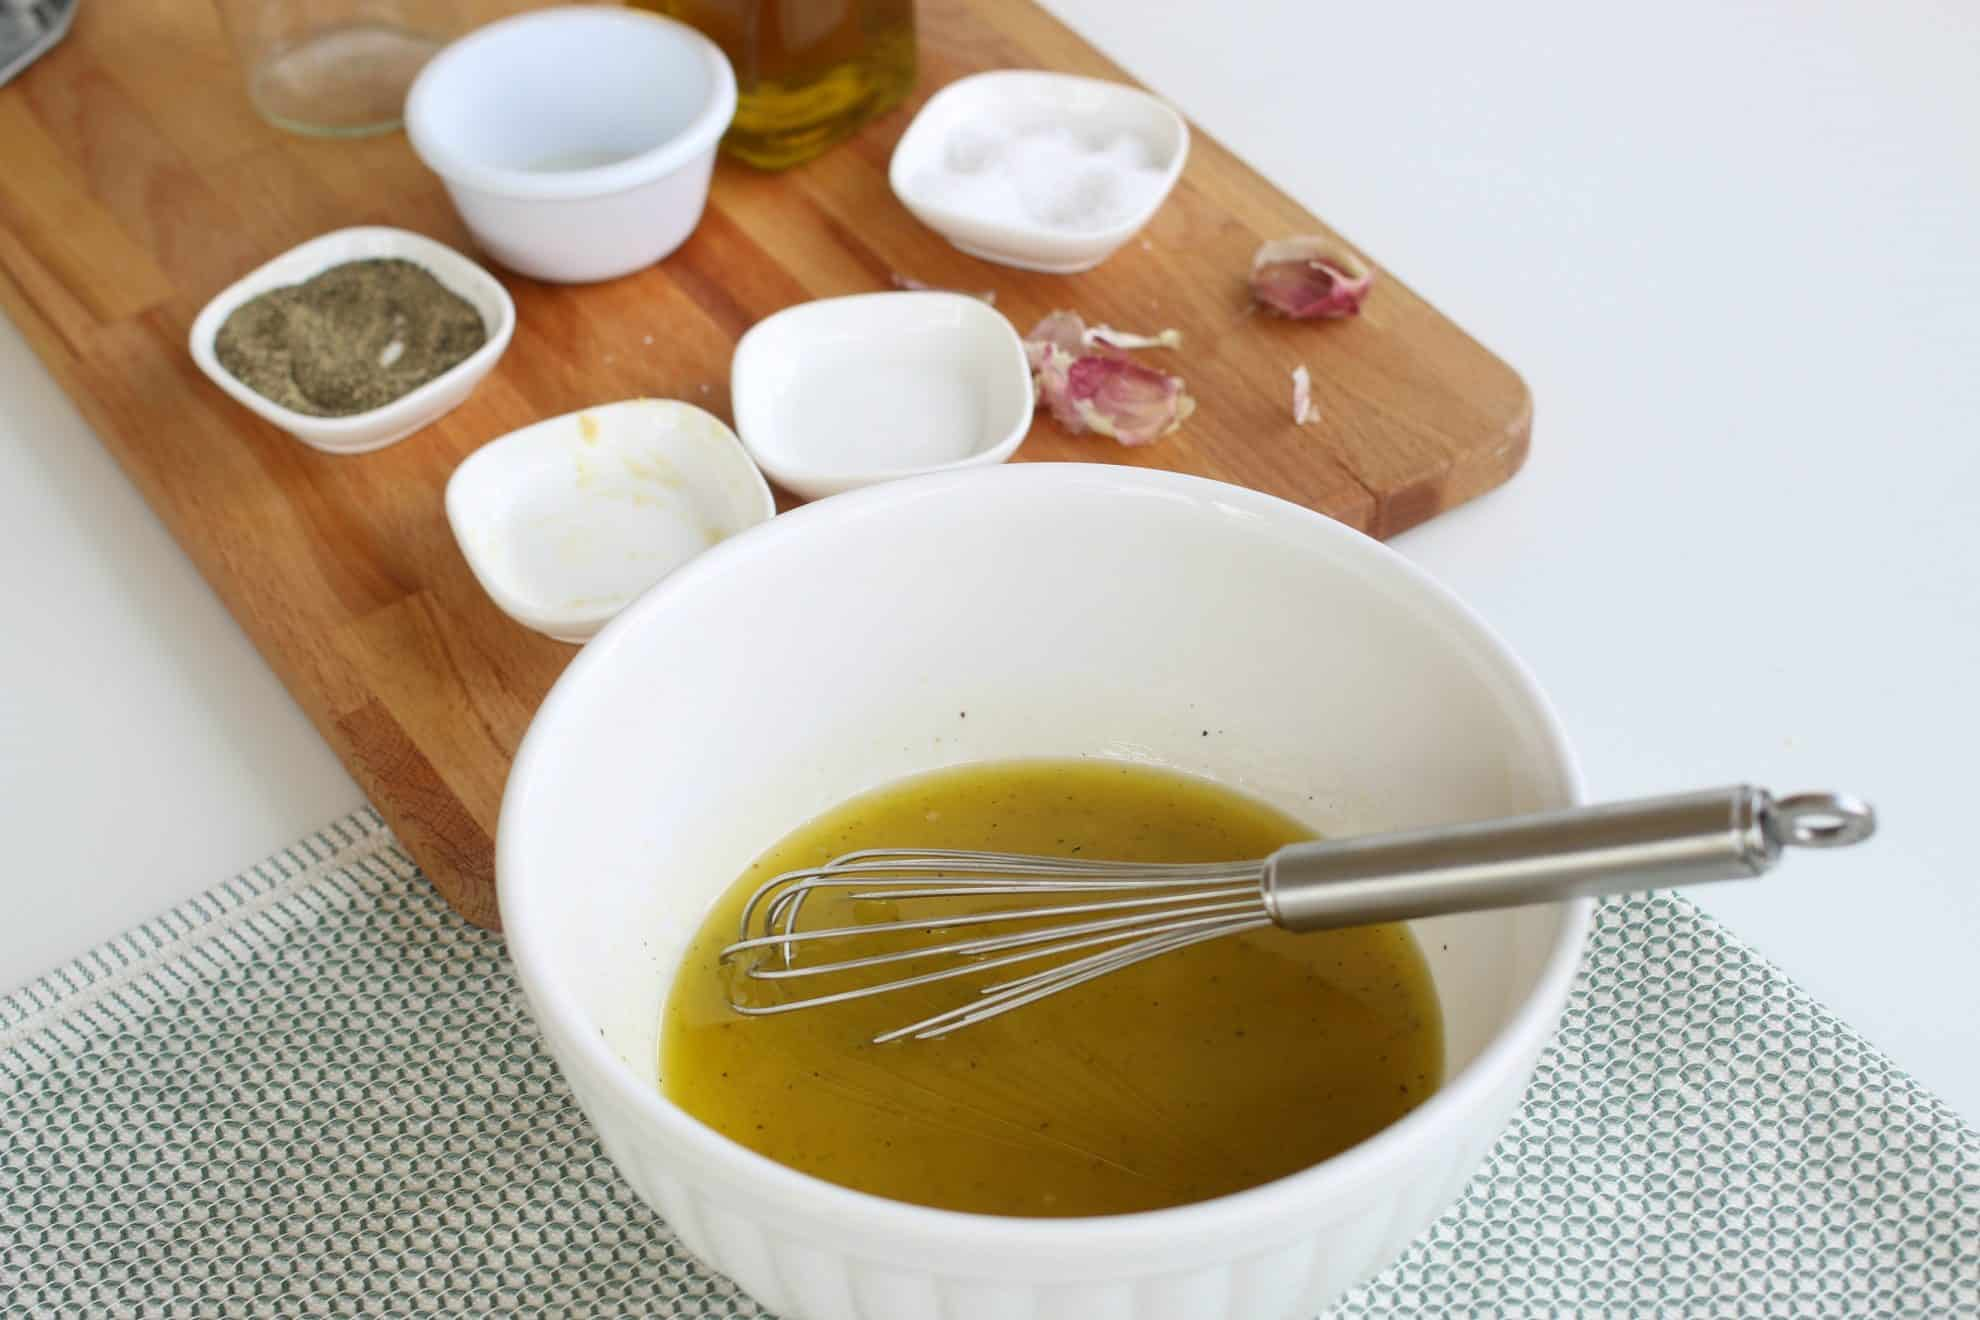 pasta salad dressing in a bowl